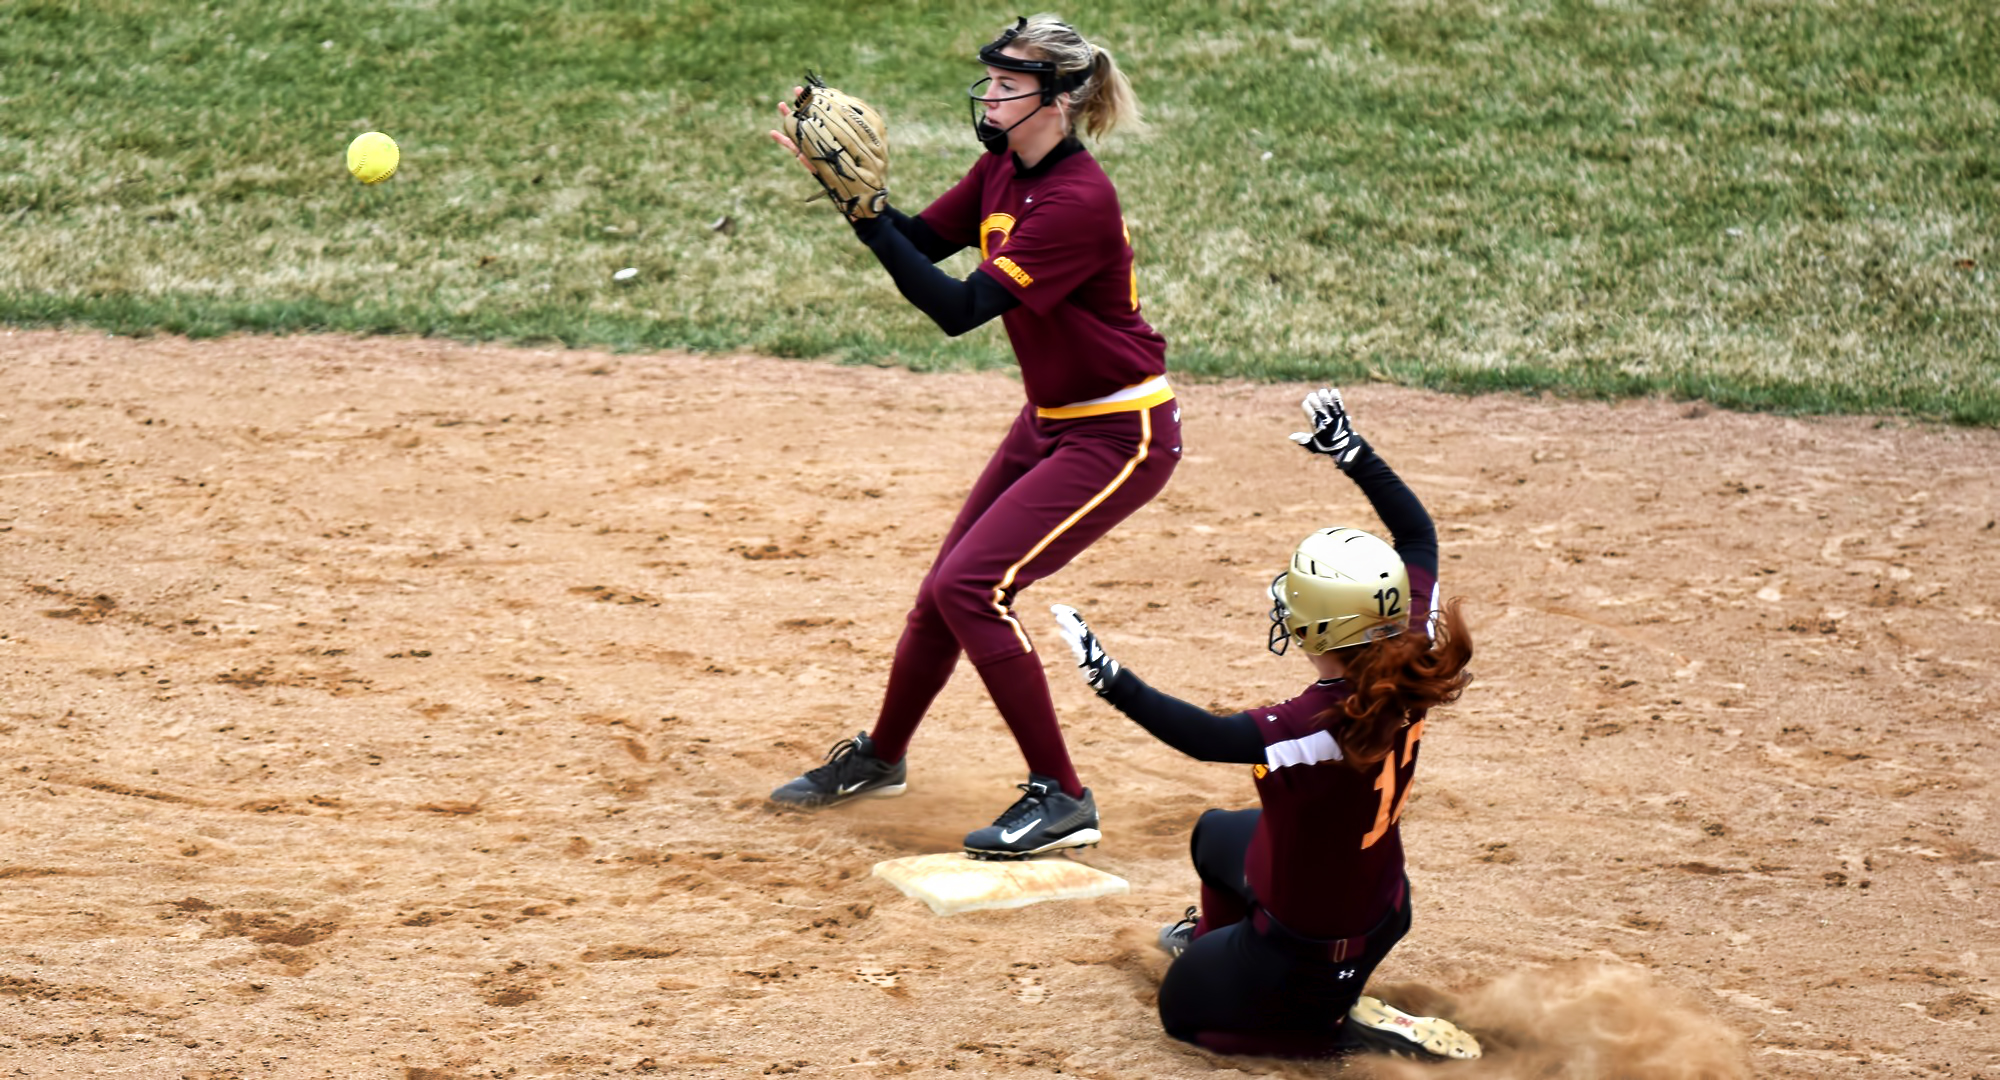 Freshman Megan Gavin gets ready to make the force out at send base during the Cobbers' sweep over UM-Morris. She earned the win in the first game and also added to her team-leading home run total.